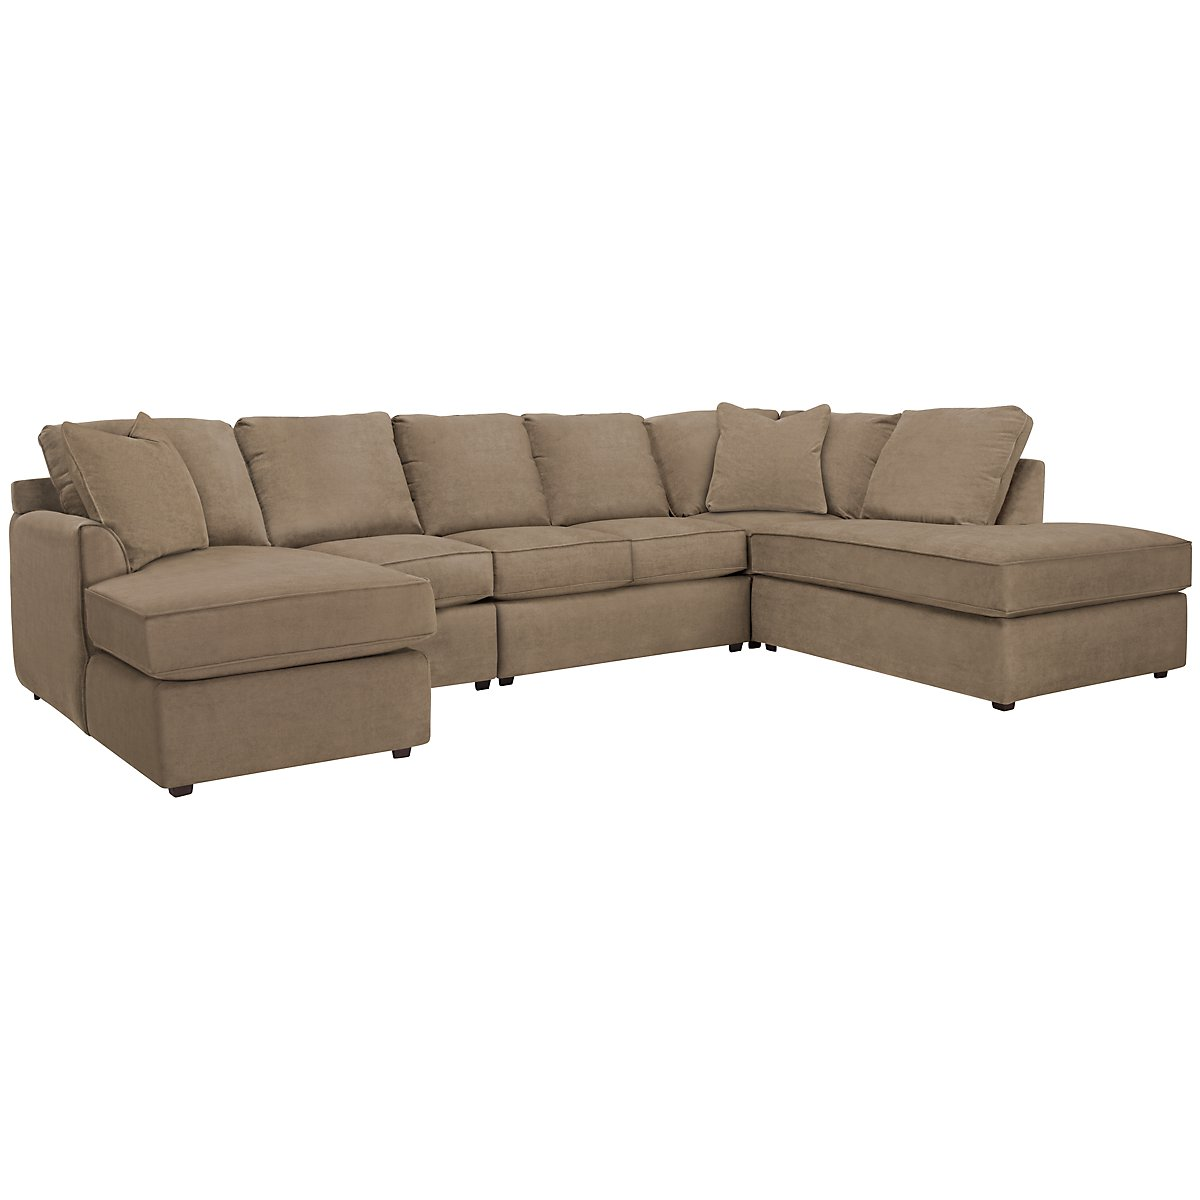 Express3 Lt Brown Microfiber Large Right Bumper Sectional